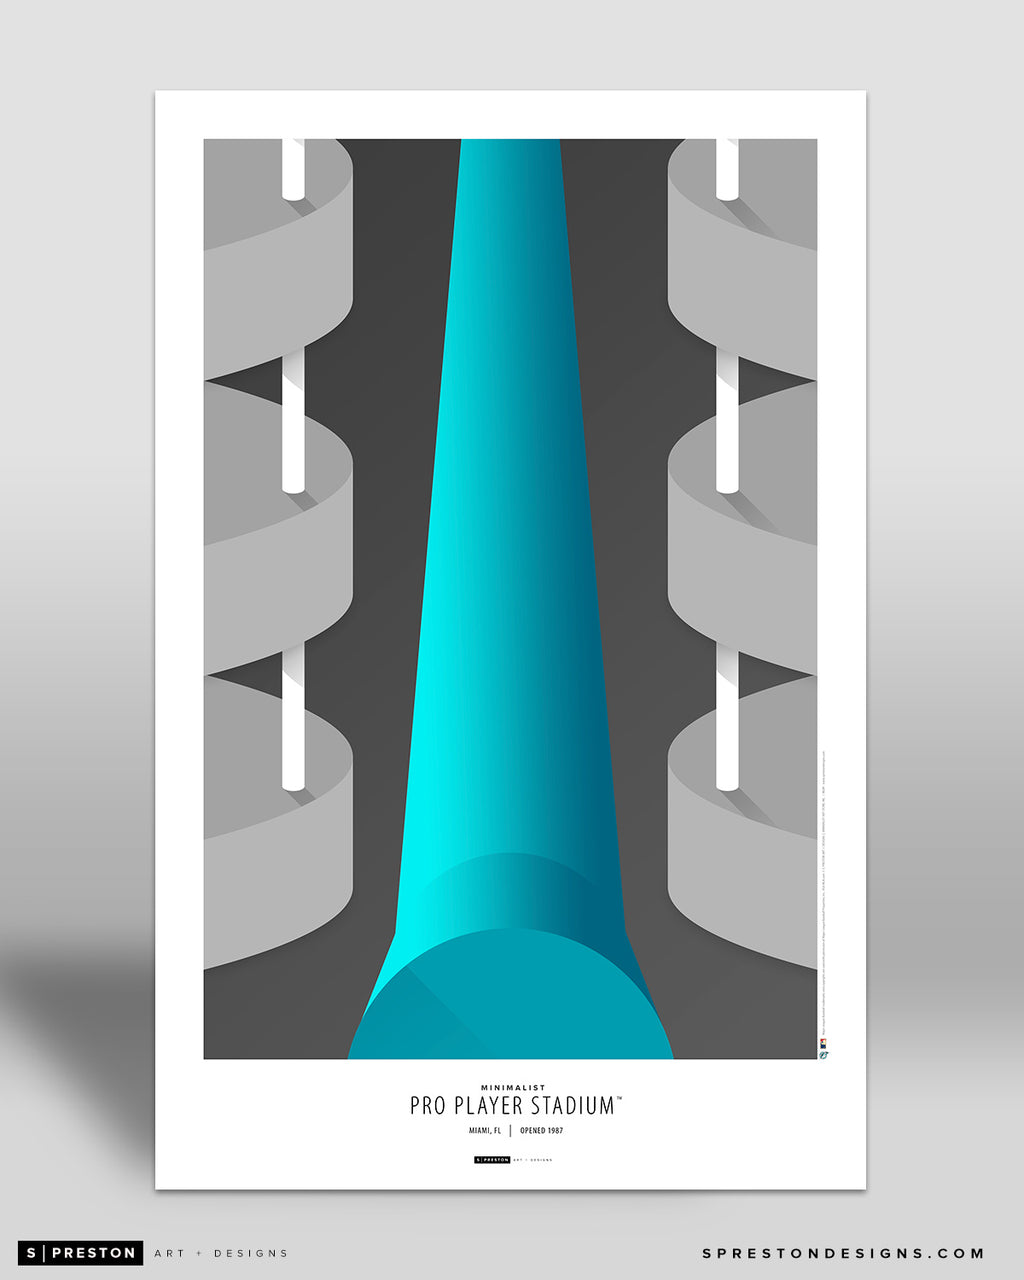 Minimalist Pro Player Stadium Poster Print Miami Marlins - S Preston